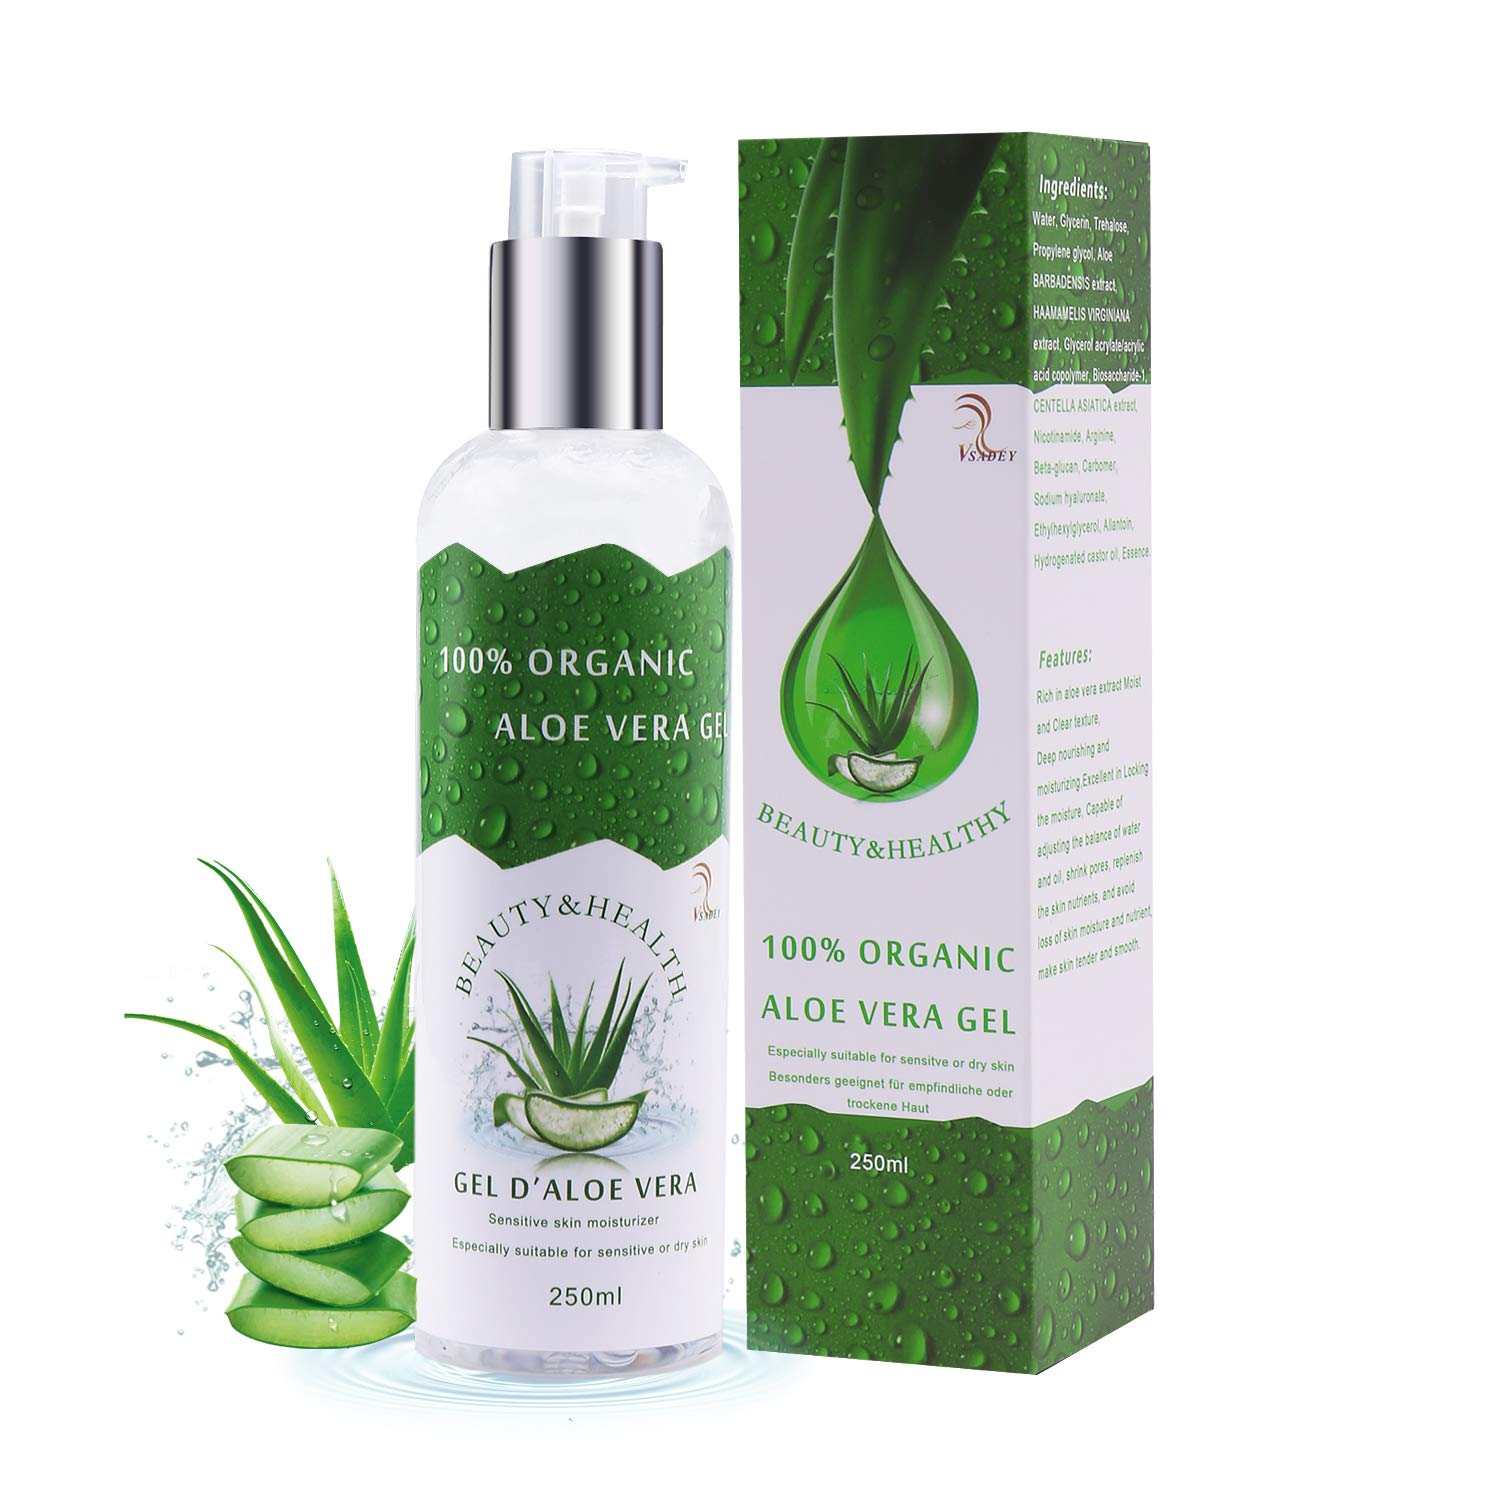 Vsadey Aloe Vera Gel, Concentrated Pure Aloe Gel 100% Natural Organic - Moisturizing Face & Body Skin Hair in Vitamins and Minerals Aloe Vera Cream after Sun Facial Moisturizer Peel Off Anti-Point Deep Cleansing Mask 250ml